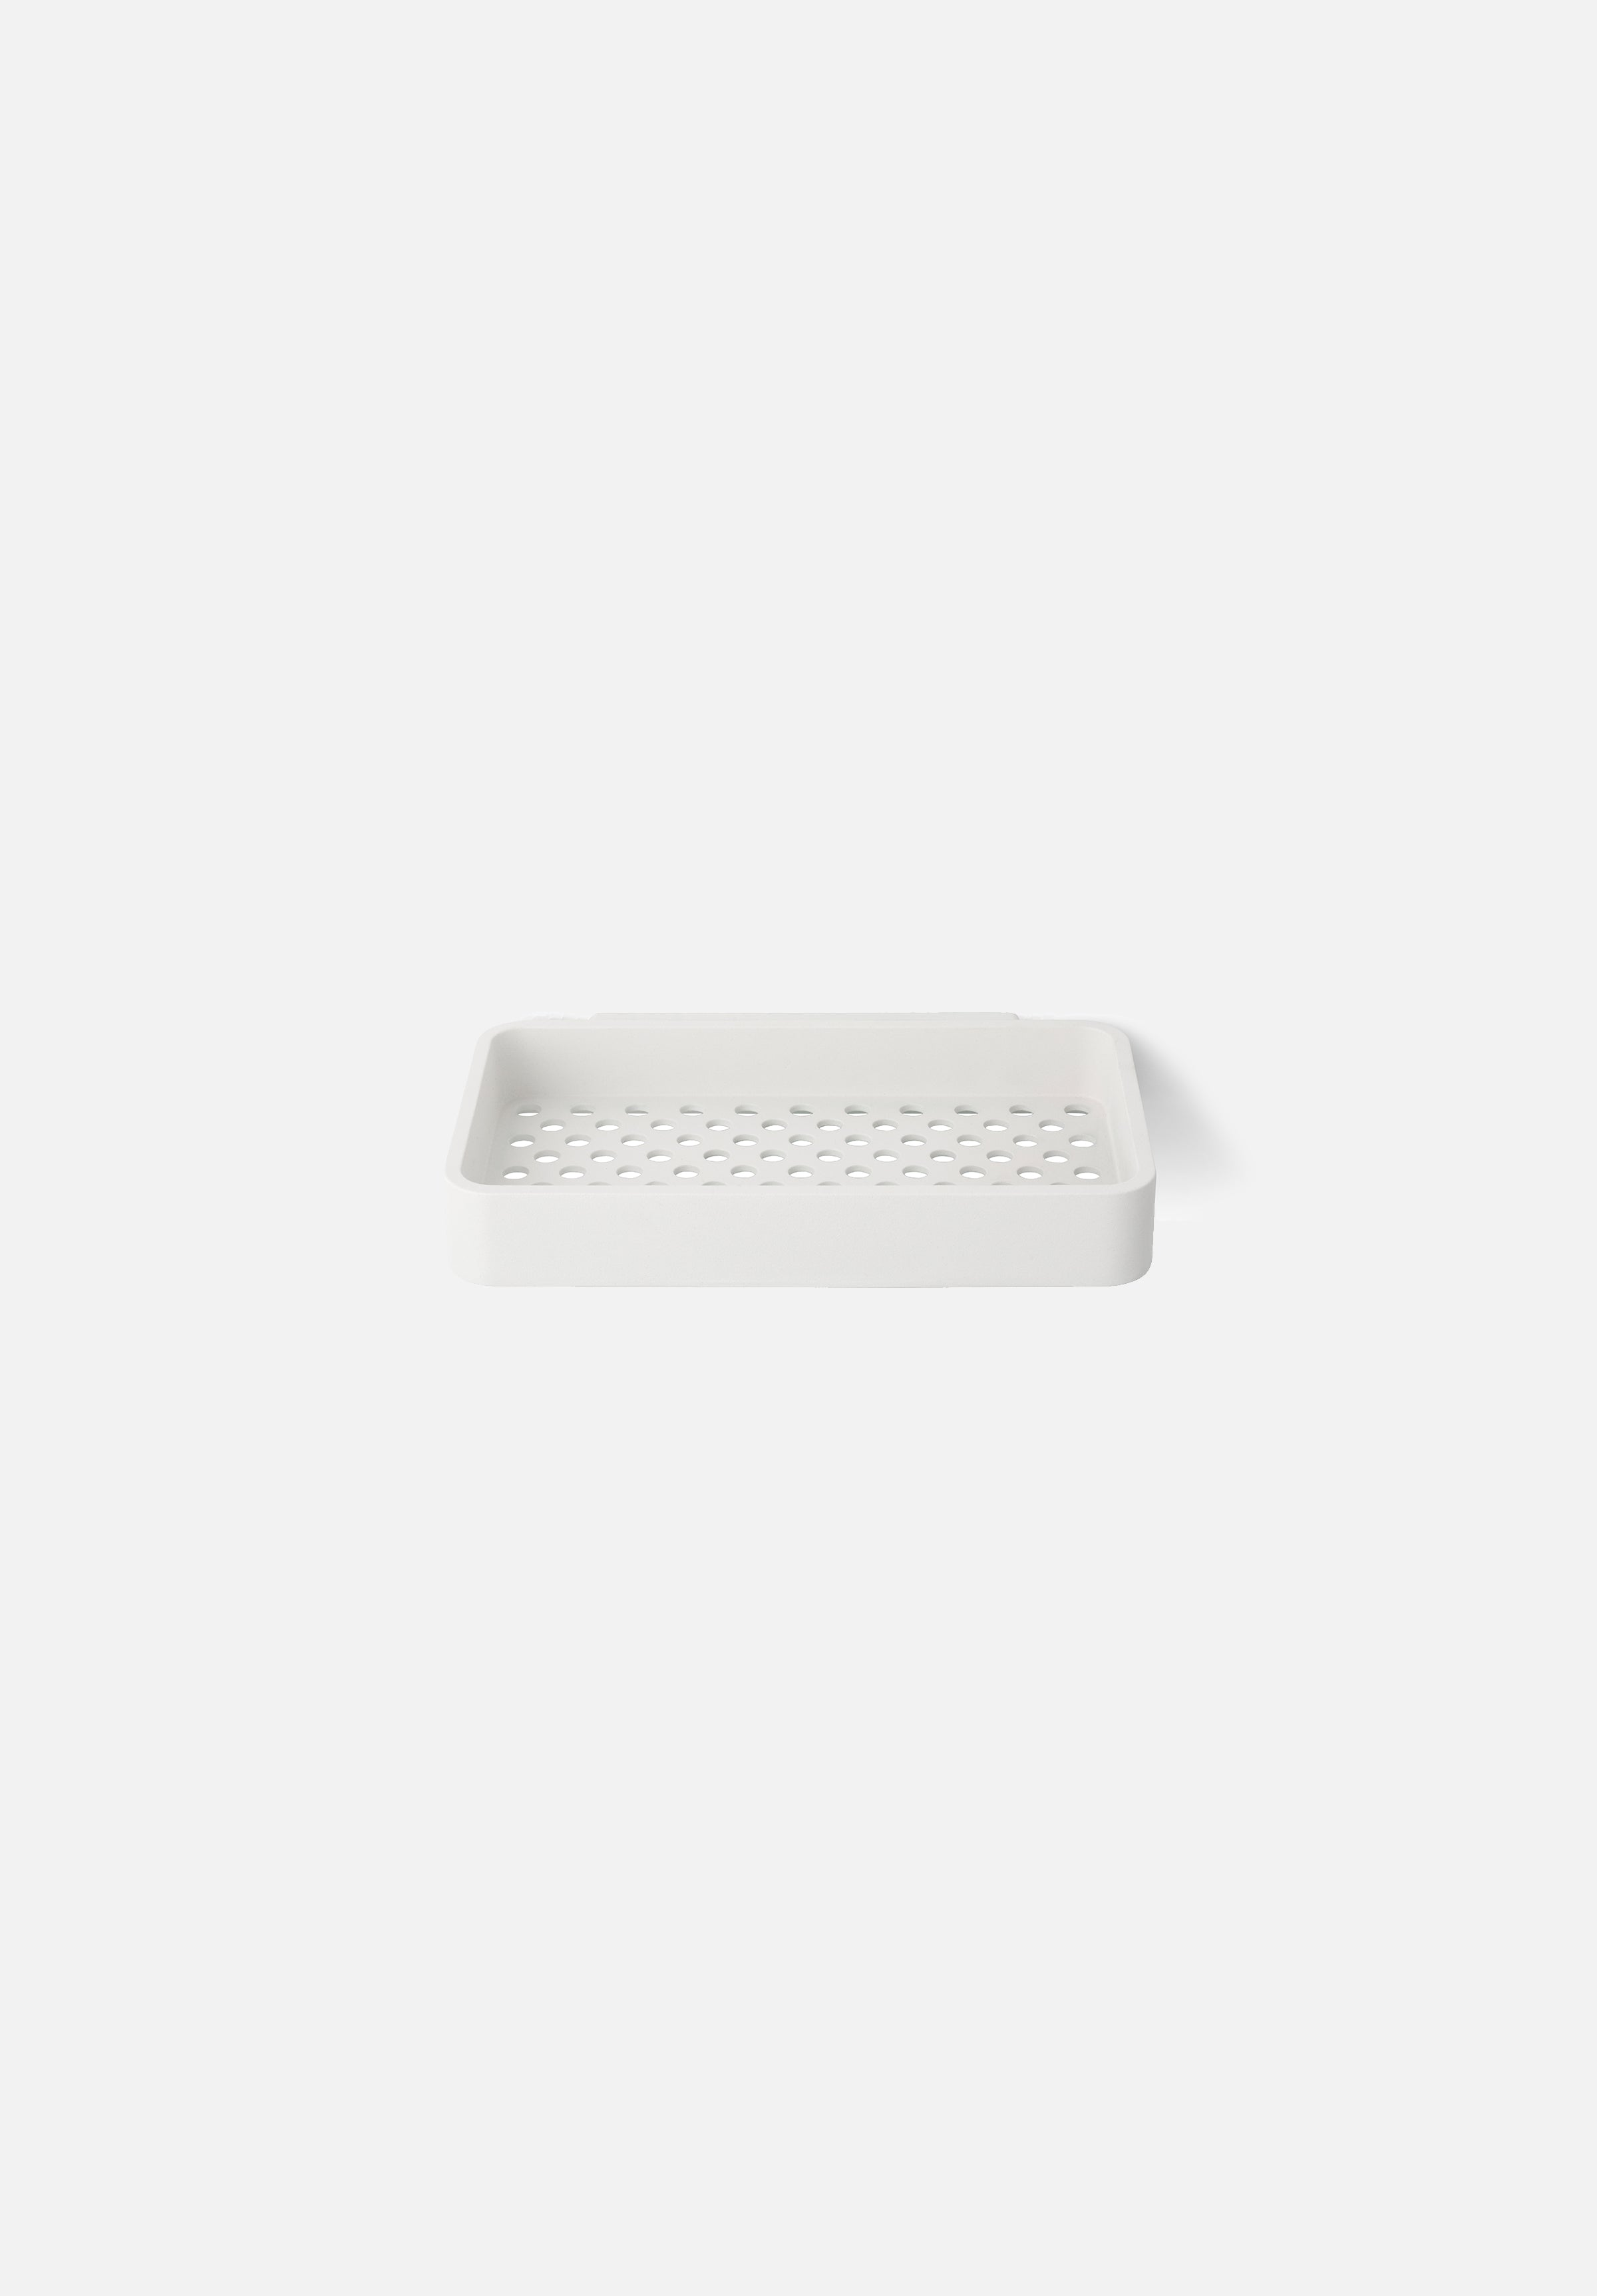 Shower Tray-Norm Architects-Menu-White-Steel-Average